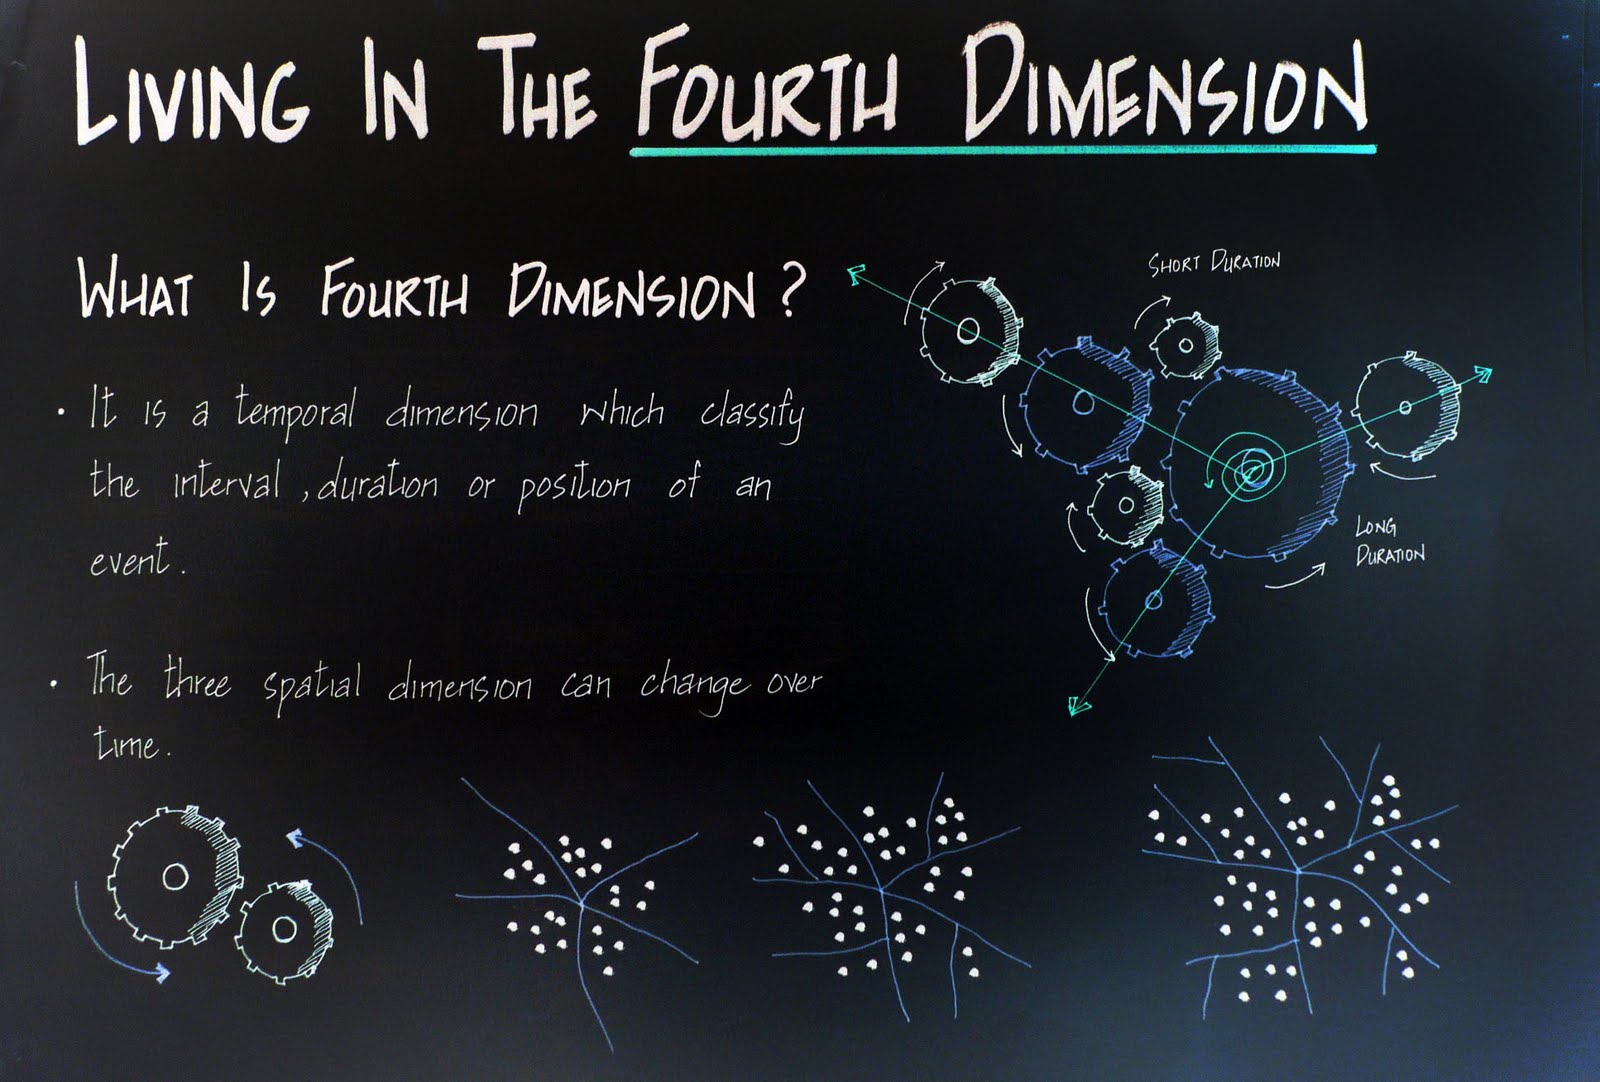 4th dimension time and space relationship